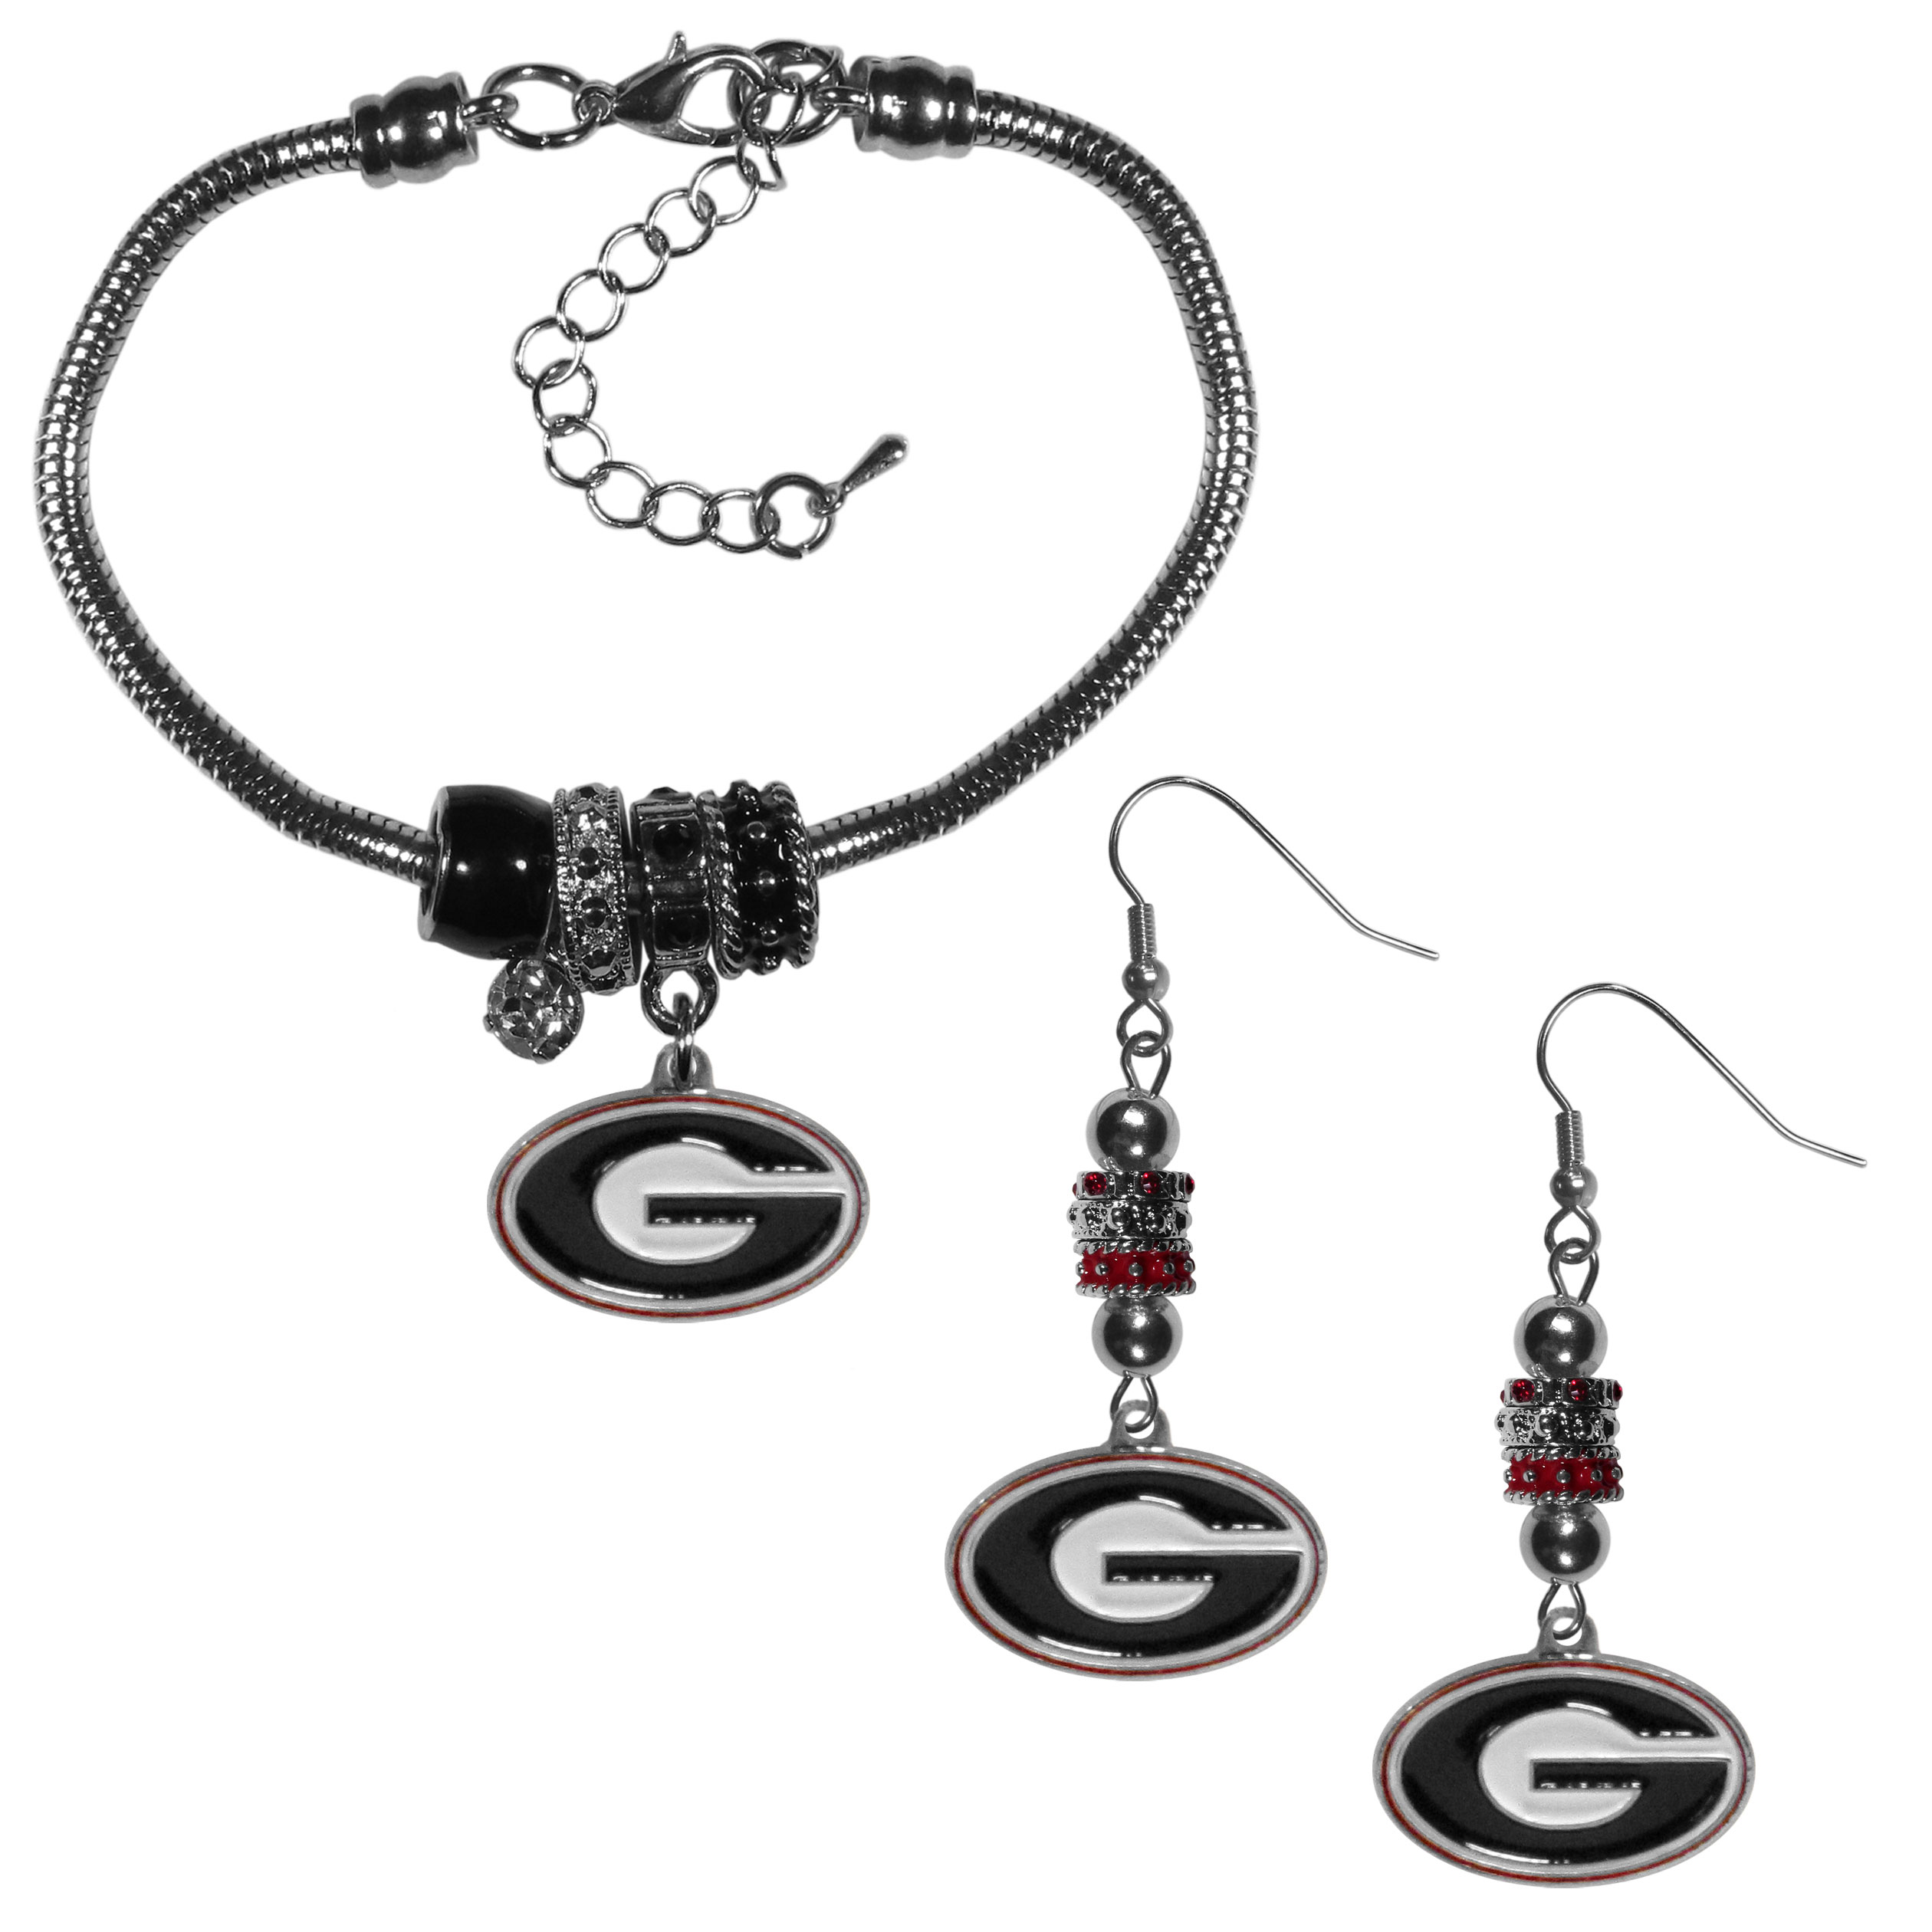 Georgia Bulldogs Euro Bead Earrings and Bracelet Set - We combine the popular Euro bead style with your love of the Georgia Bulldogs with this beautiful jewelry set that includes earrings and a matching bracelet. The stylish earrings feature hypoallergenic, nickel free fishhook posts and 3 team colored Euro beads and a metal team charm. The matching snake chain bracelet is 7.5 inches long with a 2 inch extender and 4 Euro beads with a rhinestone charm and team charm.